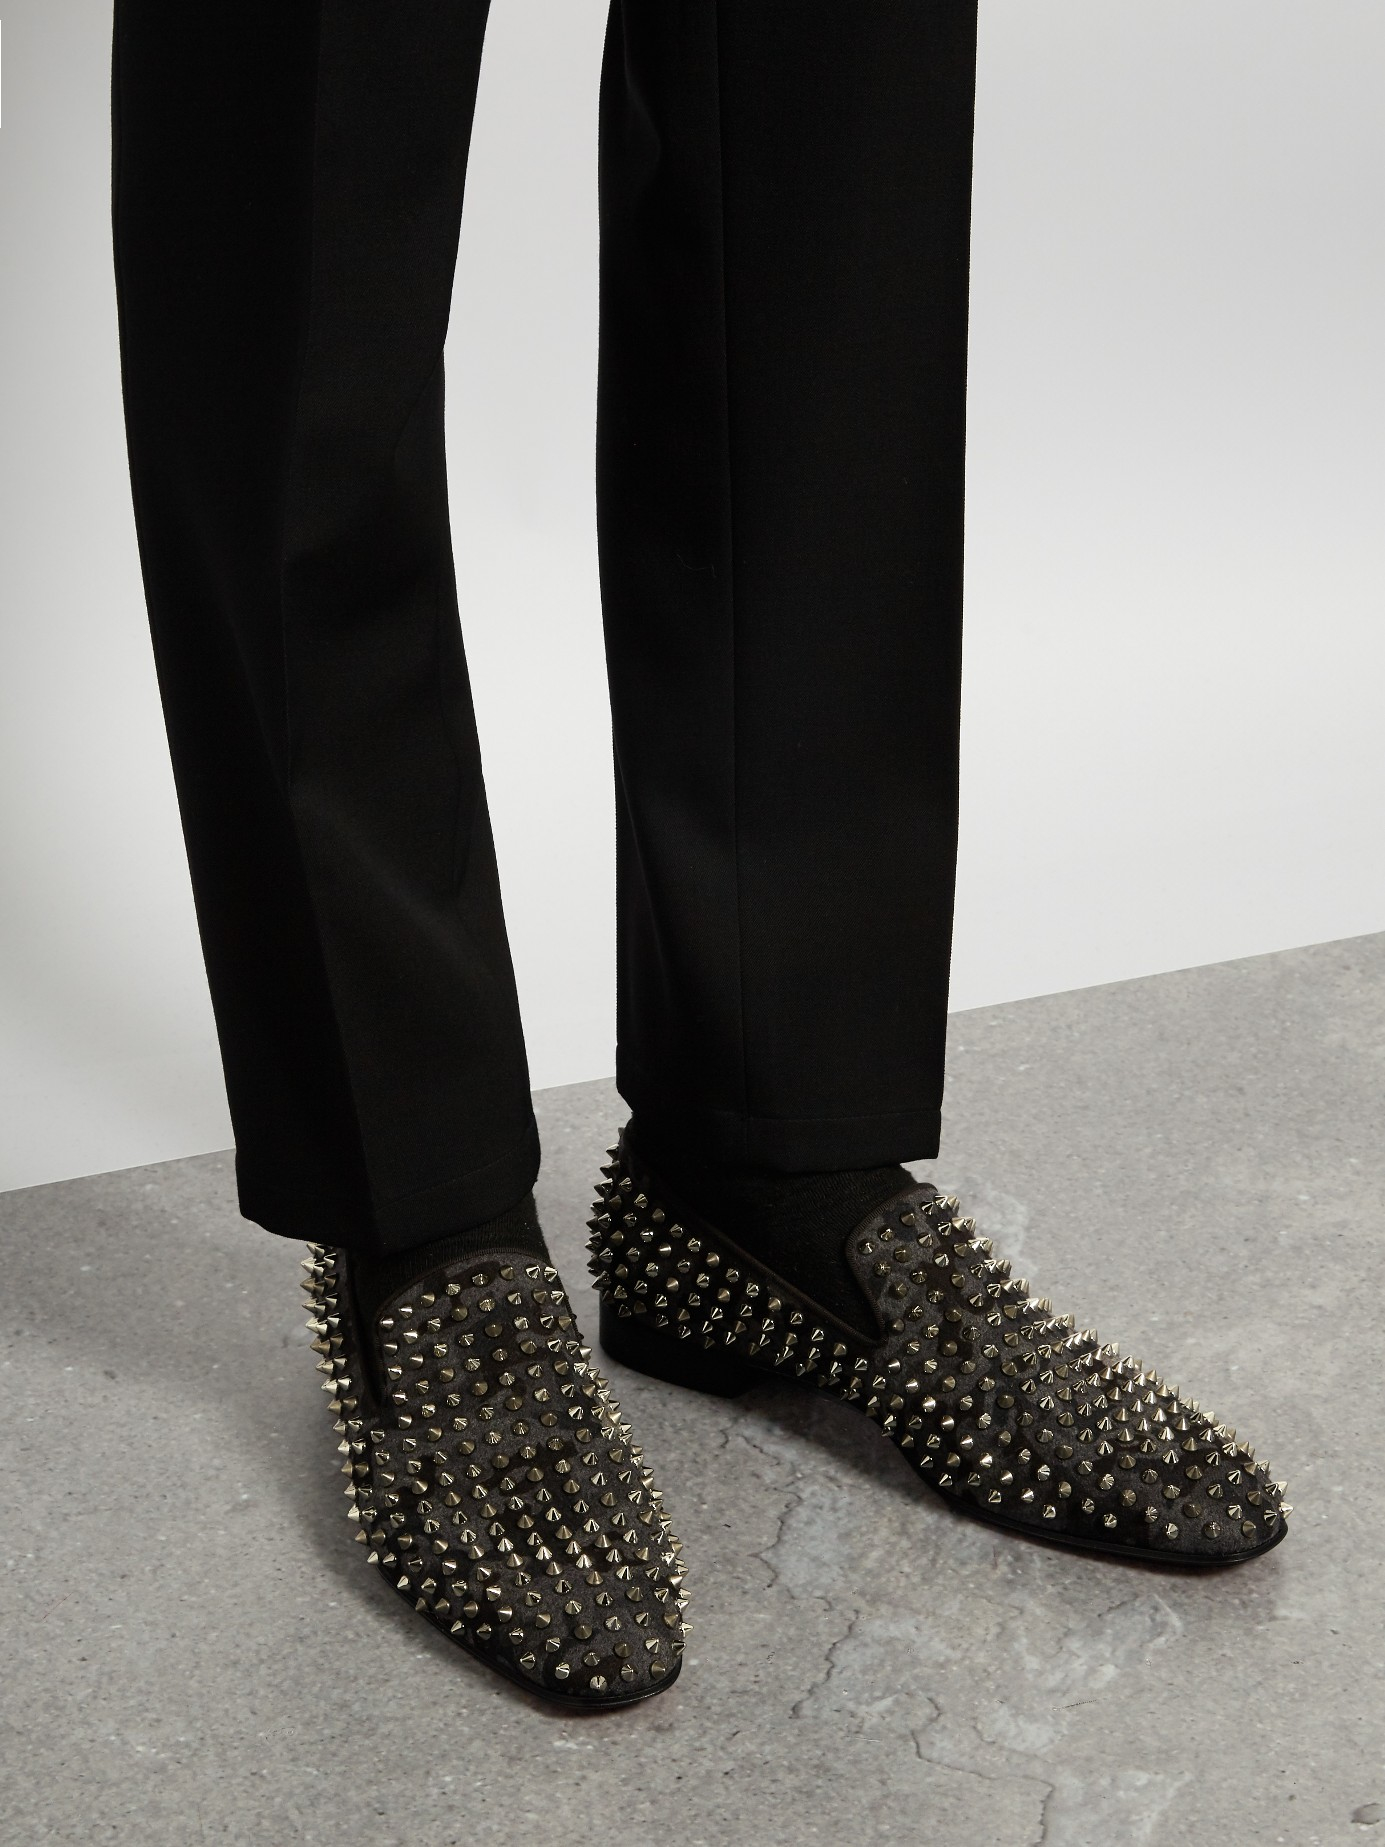 d1949510cd36 Lyst - Christian Louboutin Dandelion Camouflage Spike Loafers in ...